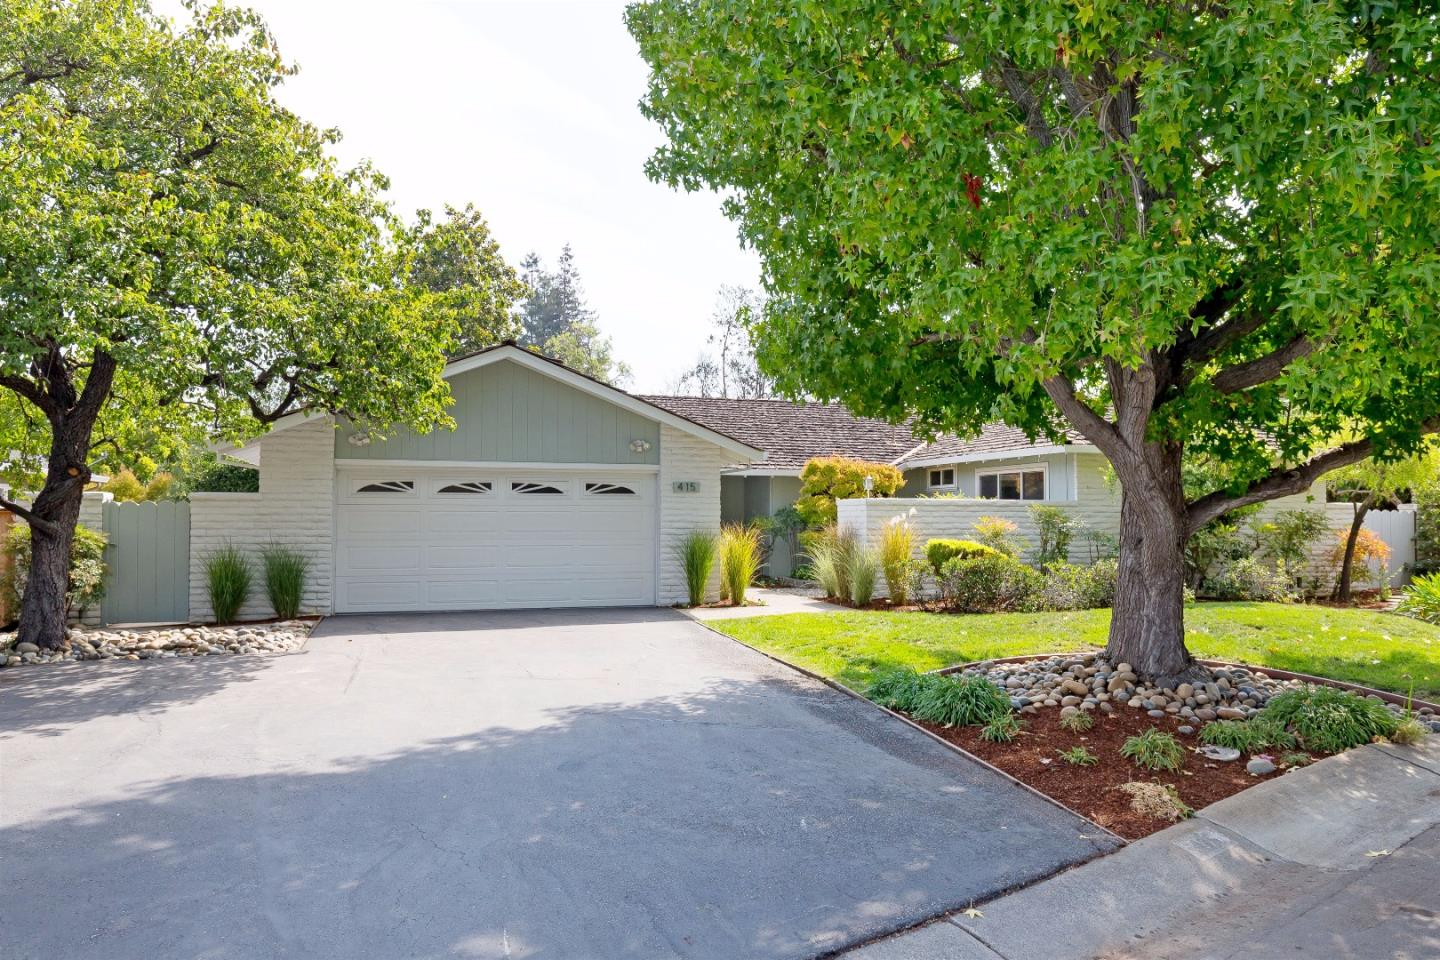 Single Family Home for Sale at 415 Guadalupe Drive Los Altos, California 94022 United States